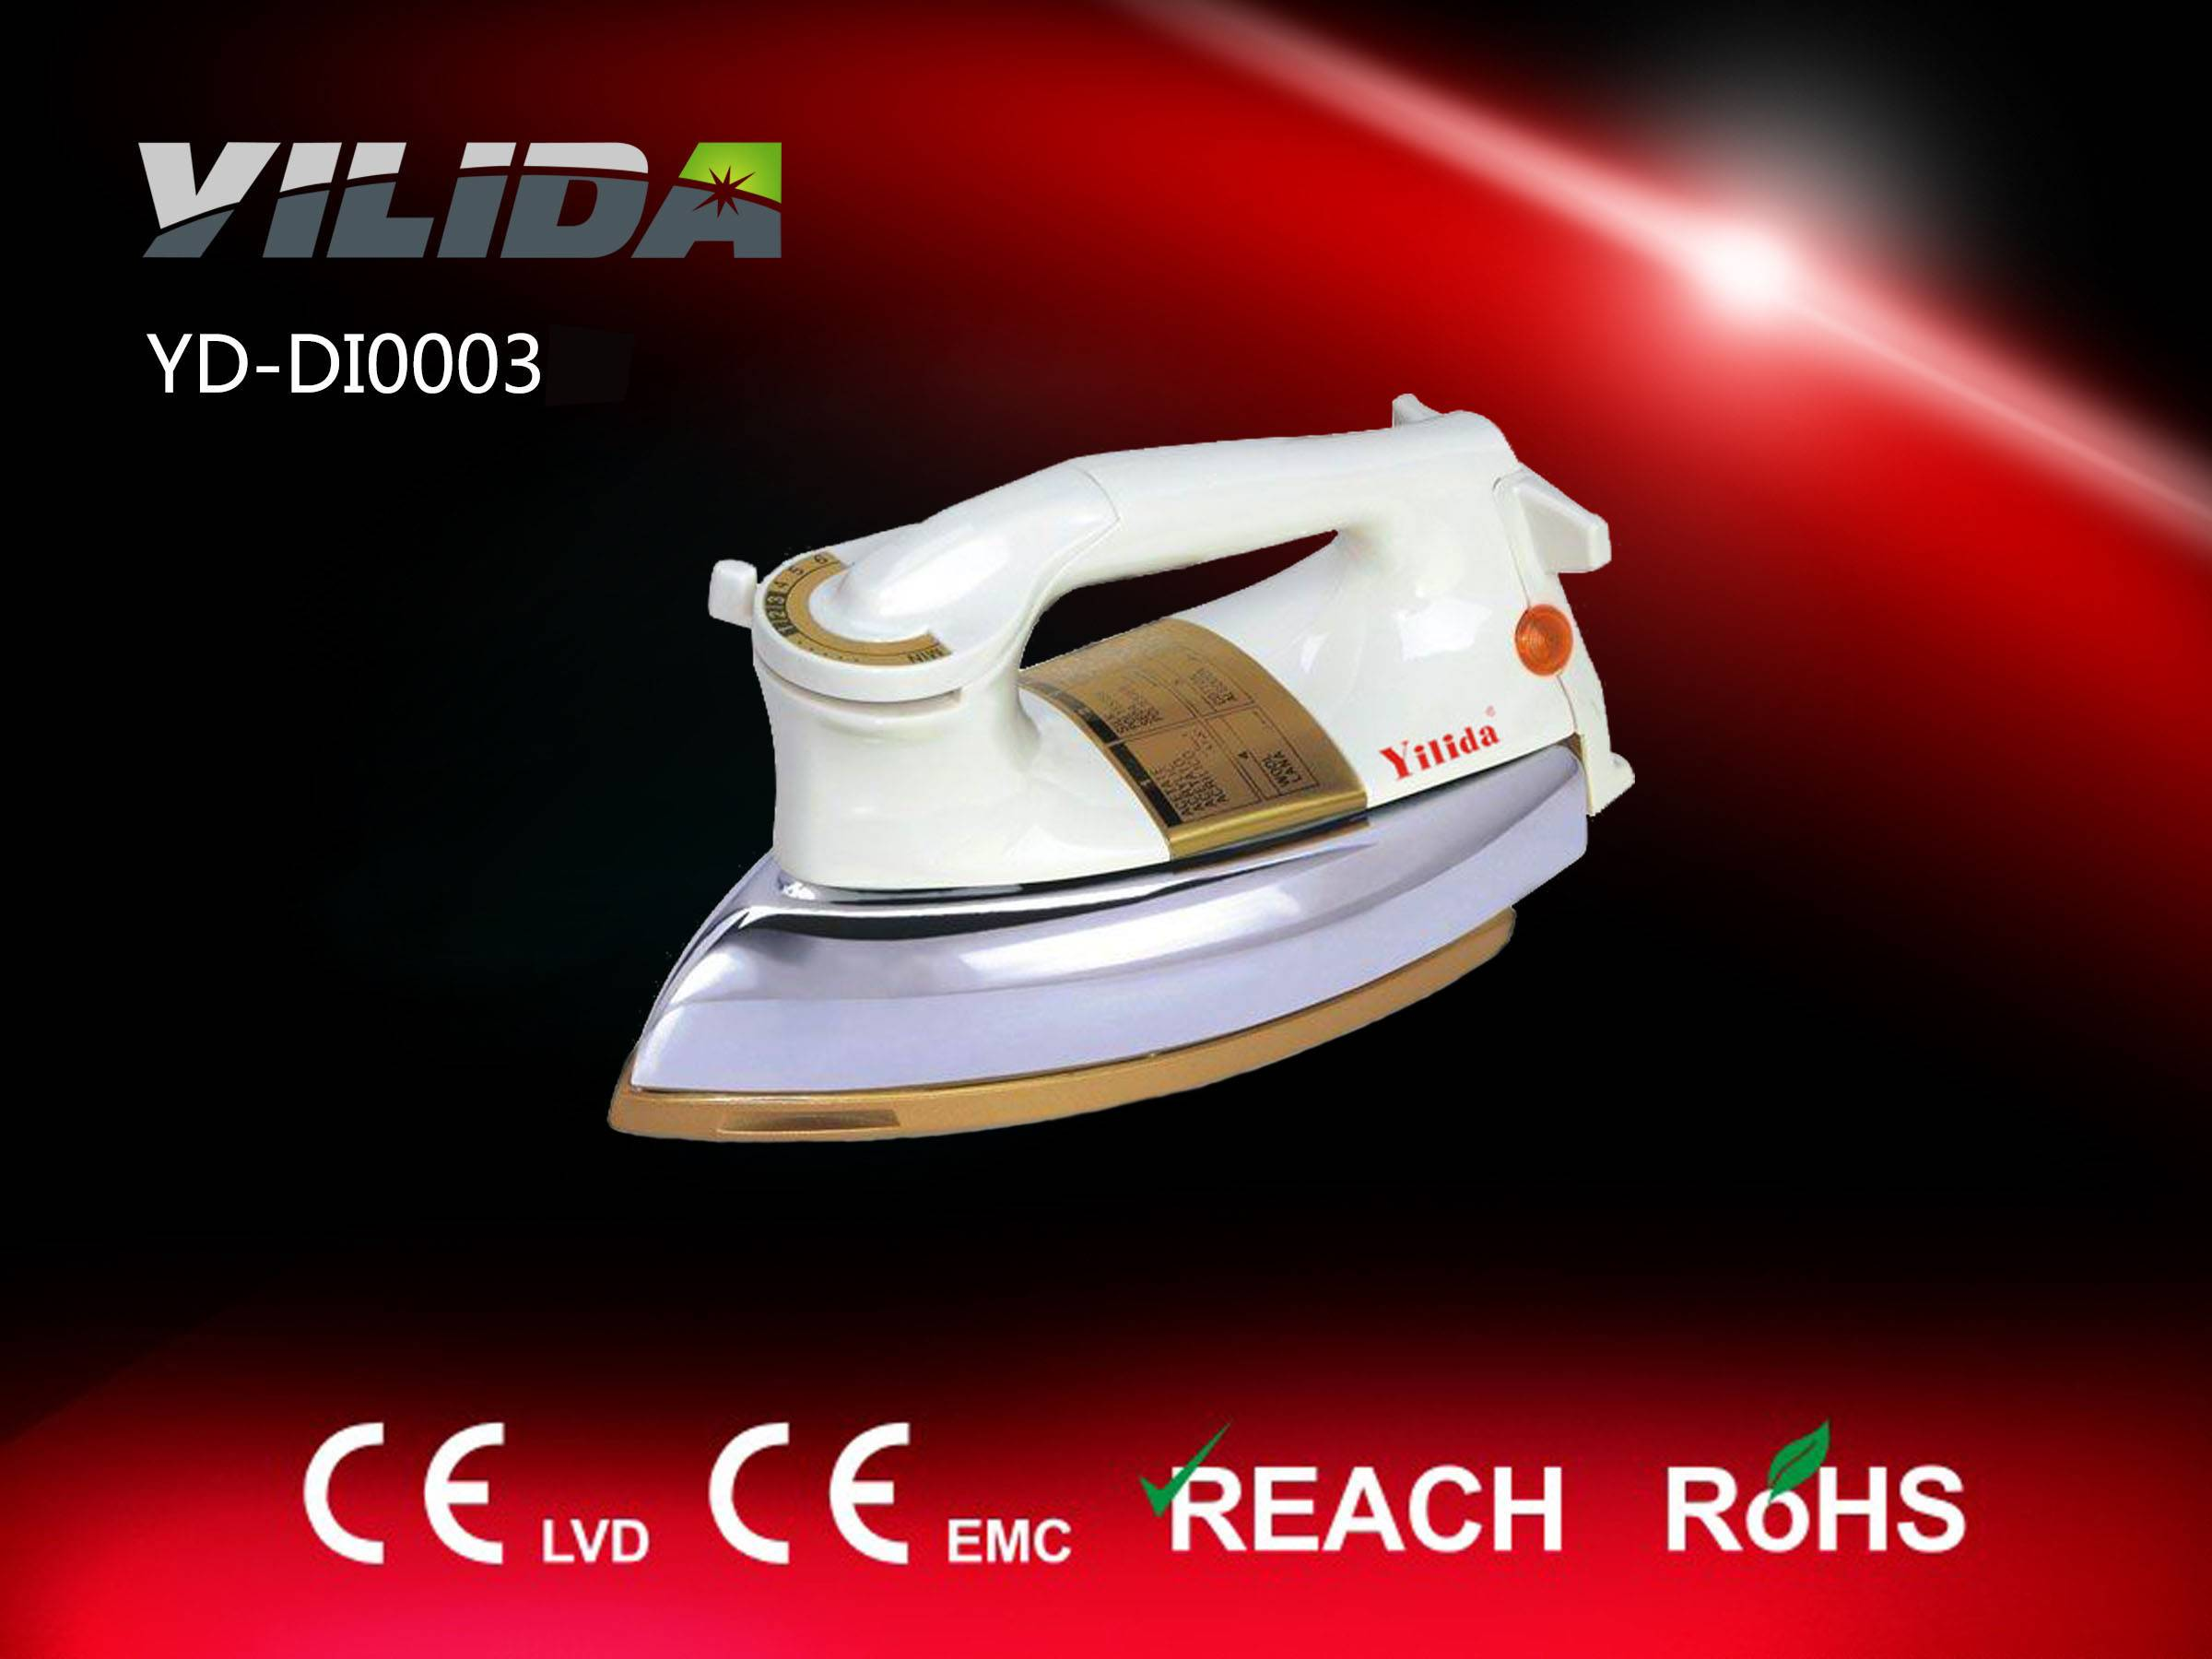 Automatic Electric Dry Iron popular in Mid-east